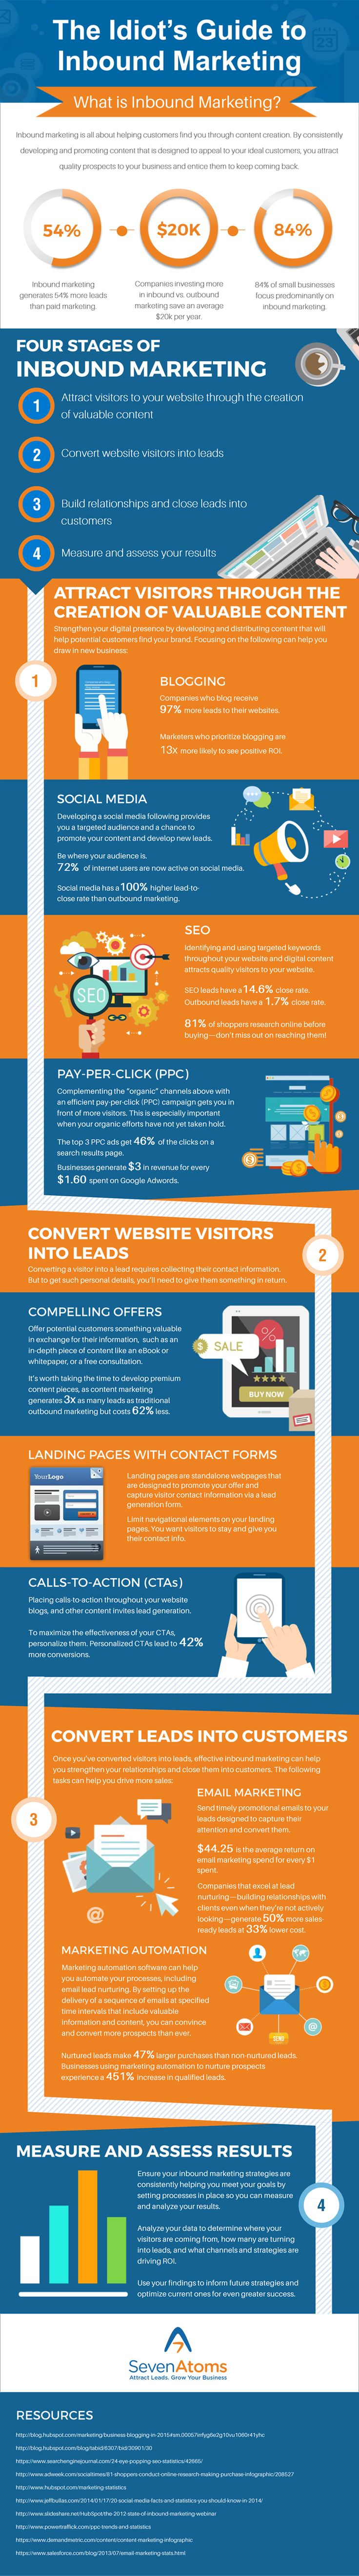 Inbound marketing is the heart and soul of any successful online campaign. In order to get people to notice your brand and, more importantly, convert those people into customers, you'll need to implement several inbound strategies. That's why we created this handy-dandy infographic that details the four fundamental stages of a successful inbound marketing campaign.